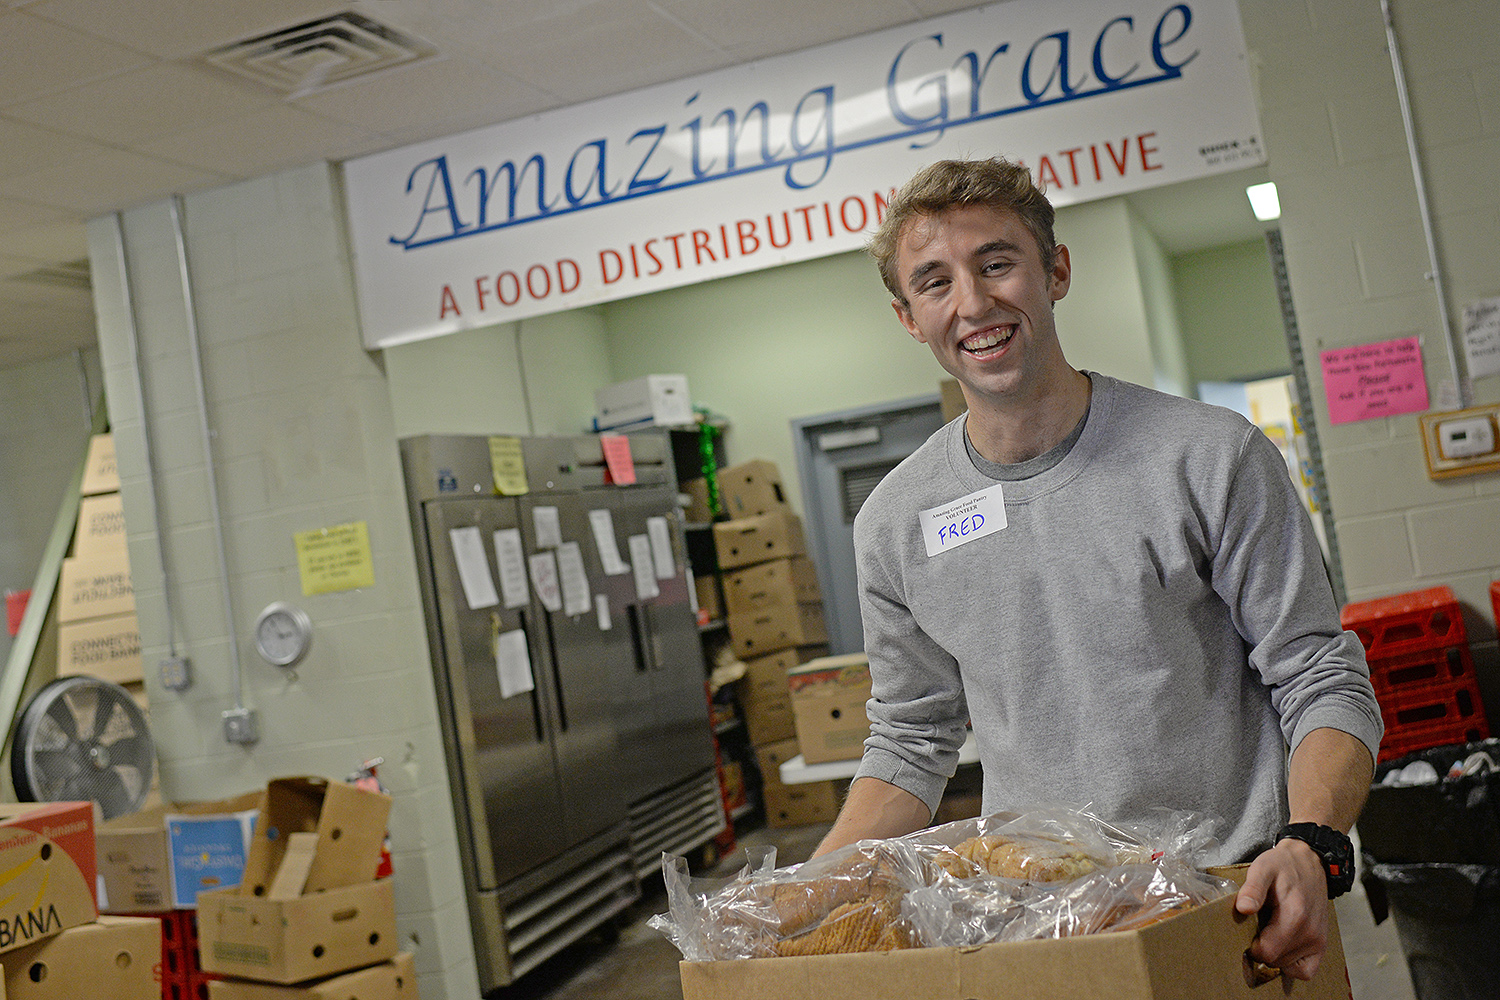 Fred Ayres '17 helps stock shelves at Amazing Grace Food Pantry in Middletown on Oct. 4. Ayers is one of several Wesleyan students and alumni who are volunteering at the food pantry this month.